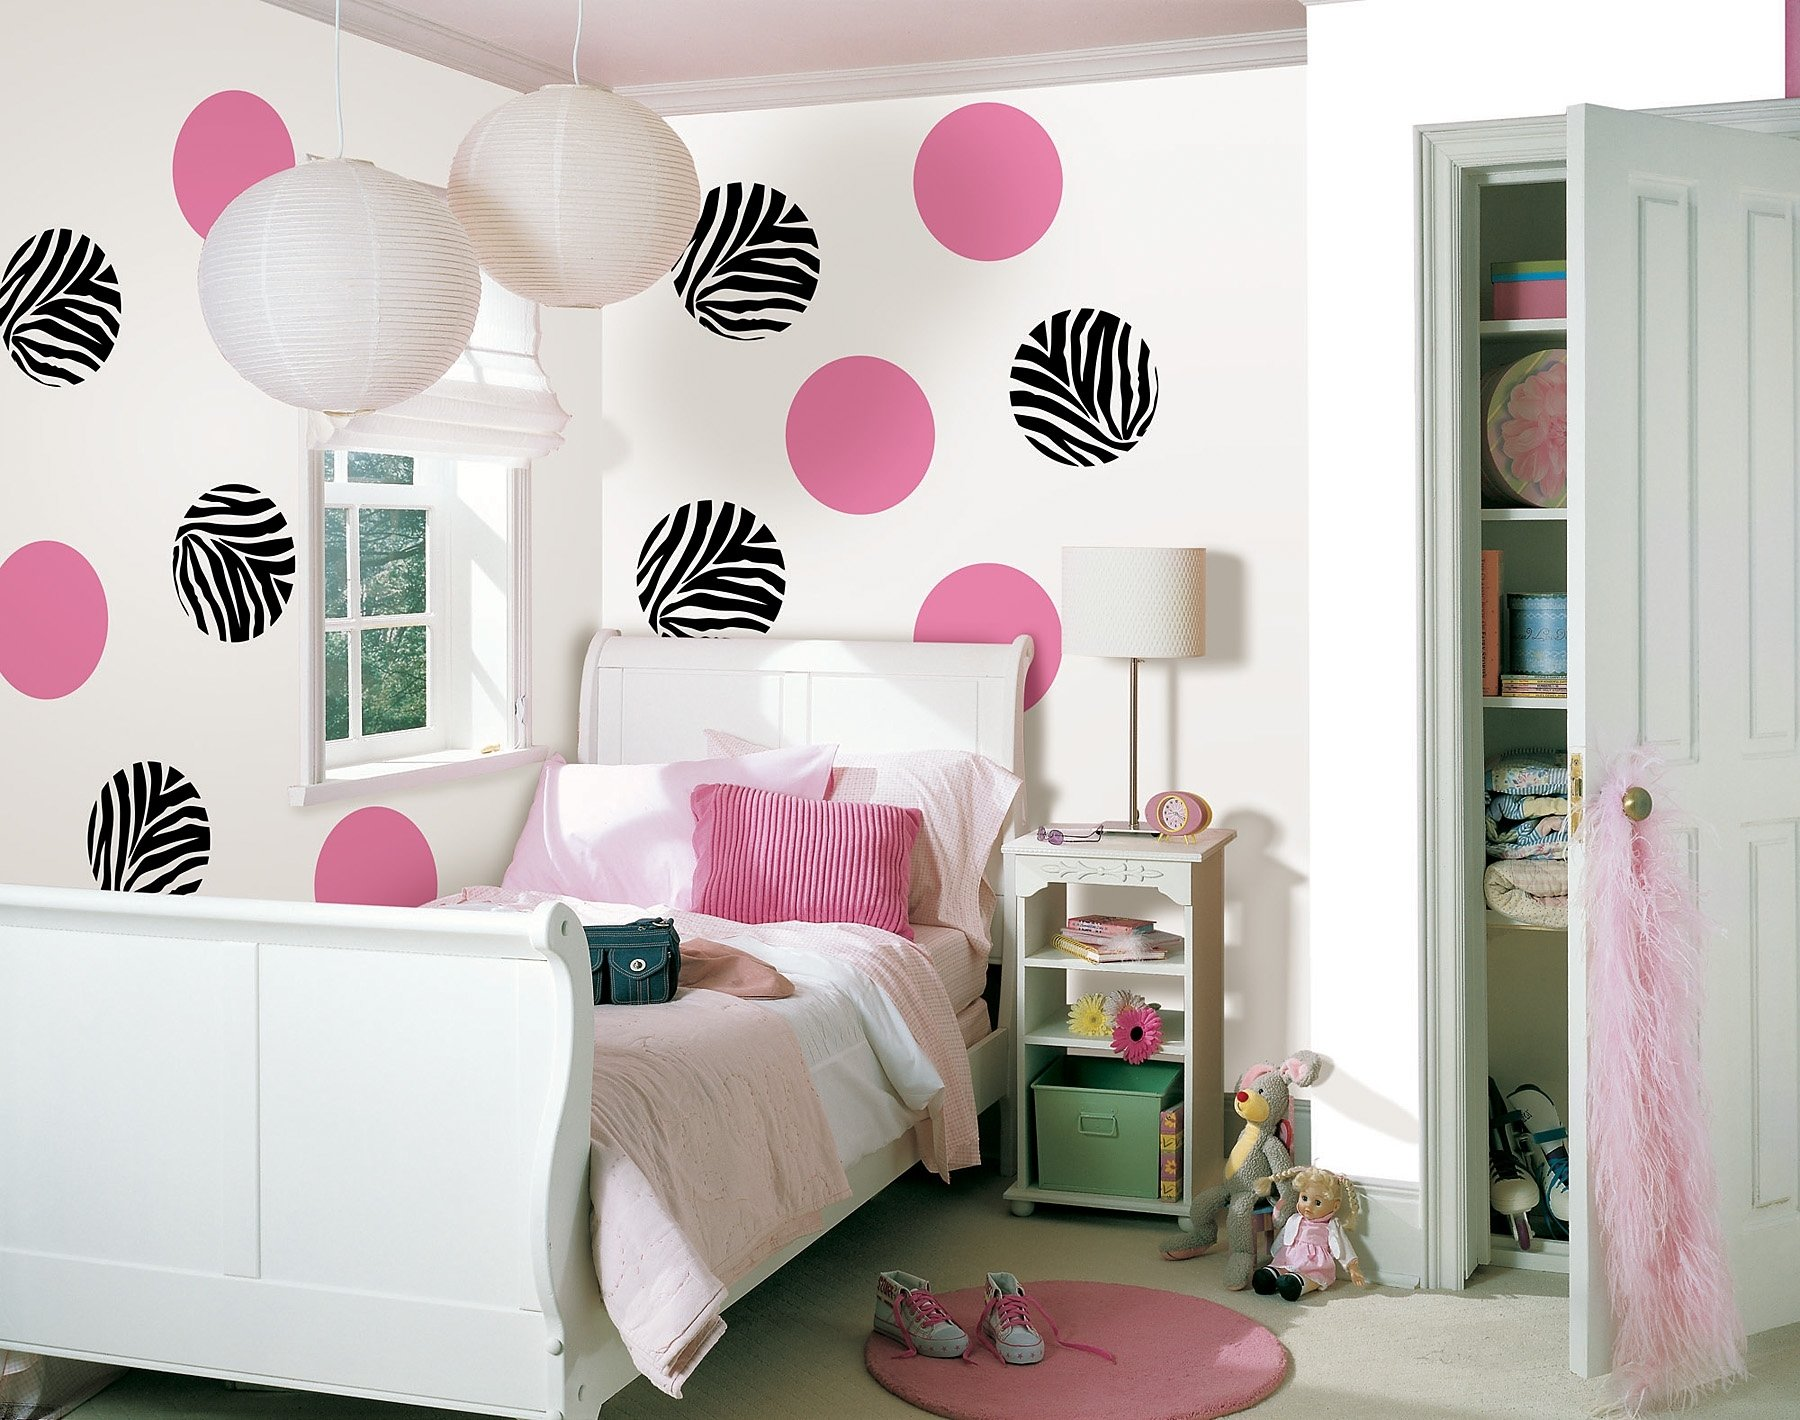 10 Cute Room Decorating Ideas For Teenage Girls Decorating Ideas For Teenage  Girls Room Teenage Girl